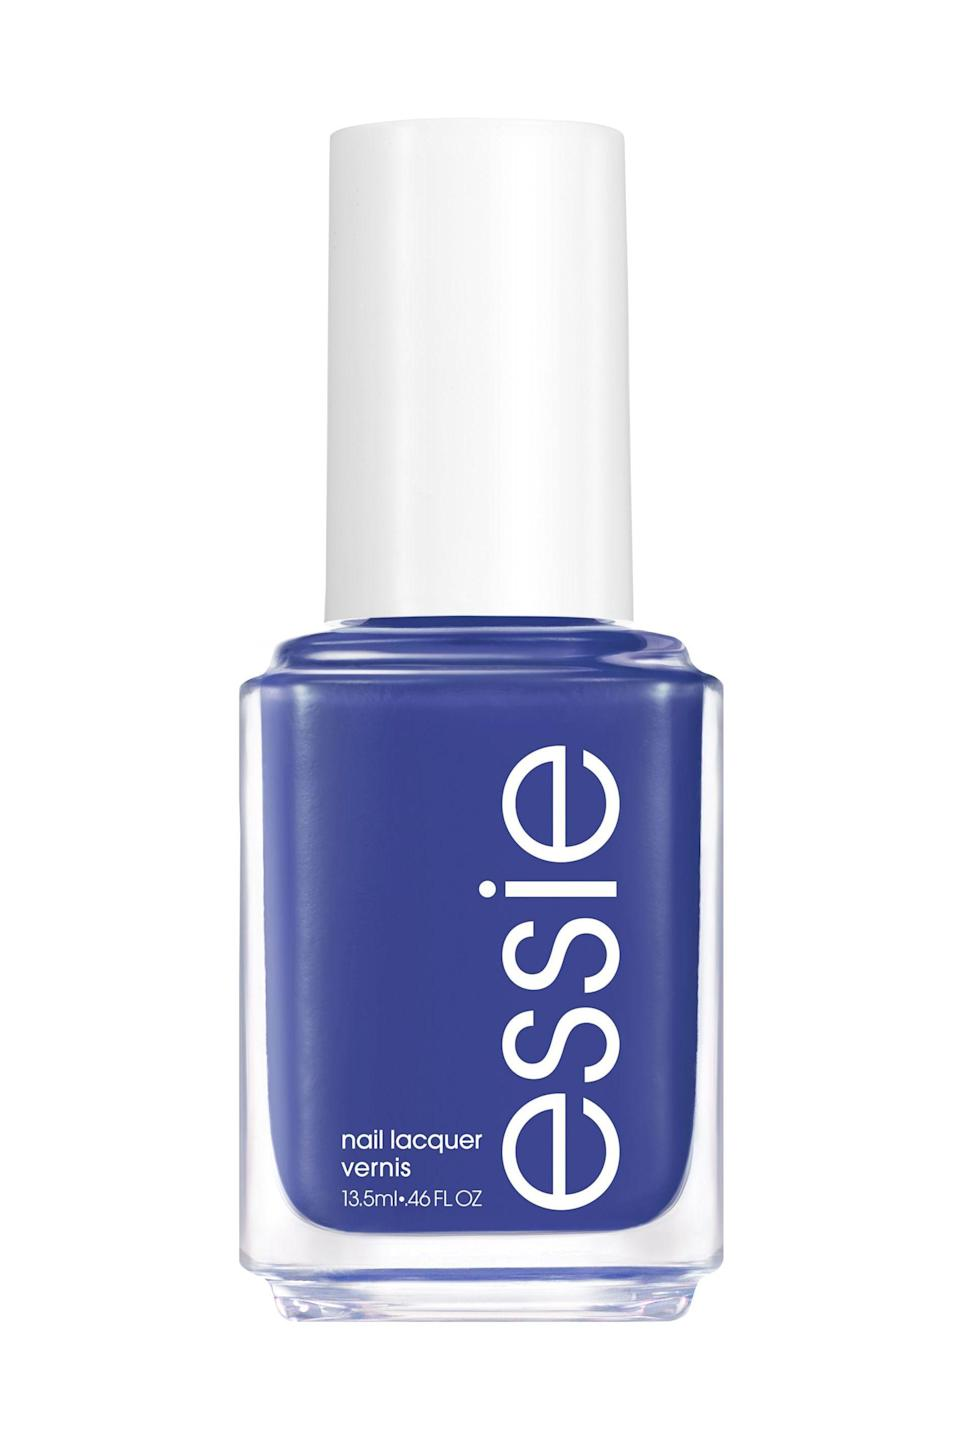 """<p><strong>Essie</strong></p><p>walmart.com</p><p><strong>$8.97</strong></p><p><a href=""""https://go.redirectingat.com?id=74968X1596630&url=https%3A%2F%2Fwww.walmart.com%2Fip%2F566558747&sref=https%3A%2F%2Fwww.marieclaire.com%2Fbeauty%2Fnews%2Fg3310%2Fbest-nail-colors-winter%2F"""" rel=""""nofollow noopener"""" target=""""_blank"""" data-ylk=""""slk:SHOP IT"""" class=""""link rapid-noclick-resp"""">SHOP IT</a></p><p>Summer may own some of the more playful shades in the rainbow, but a pop of bold blue can brighten up any cold weather ensemble. </p>"""